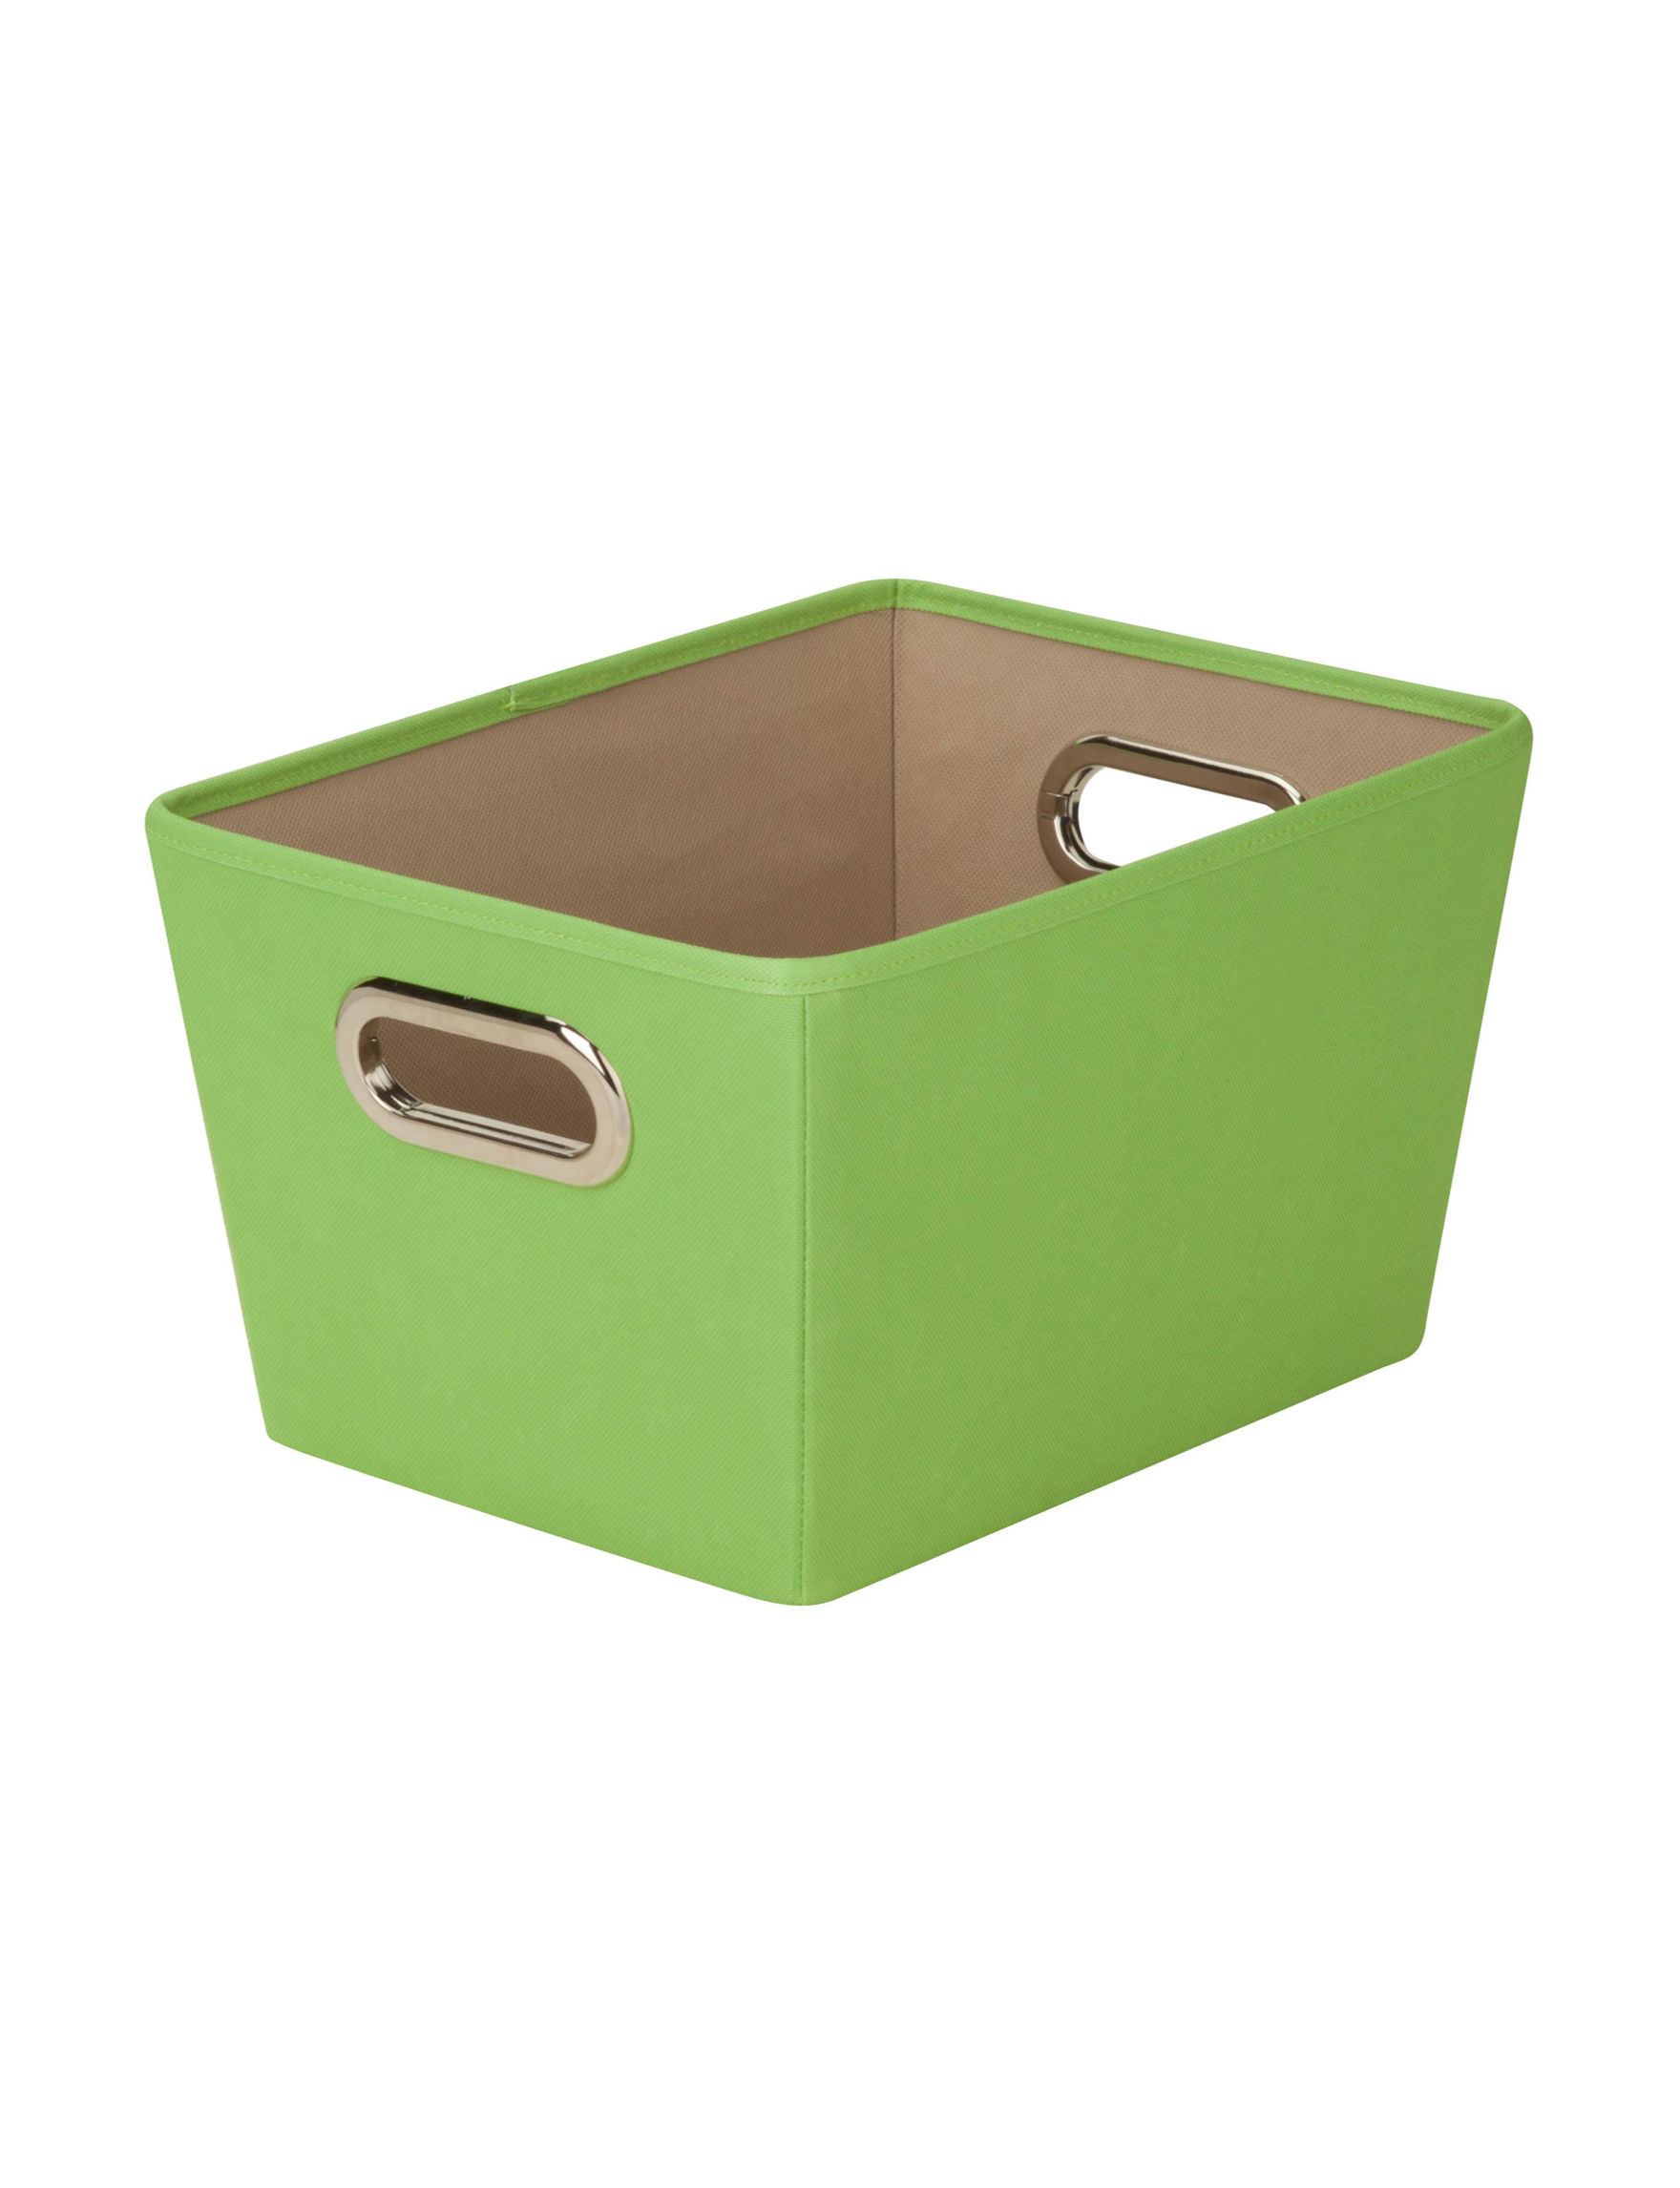 Honey-Can-Do International Green Cubbies & Cubes Storage Bags & Boxes Storage & Organization